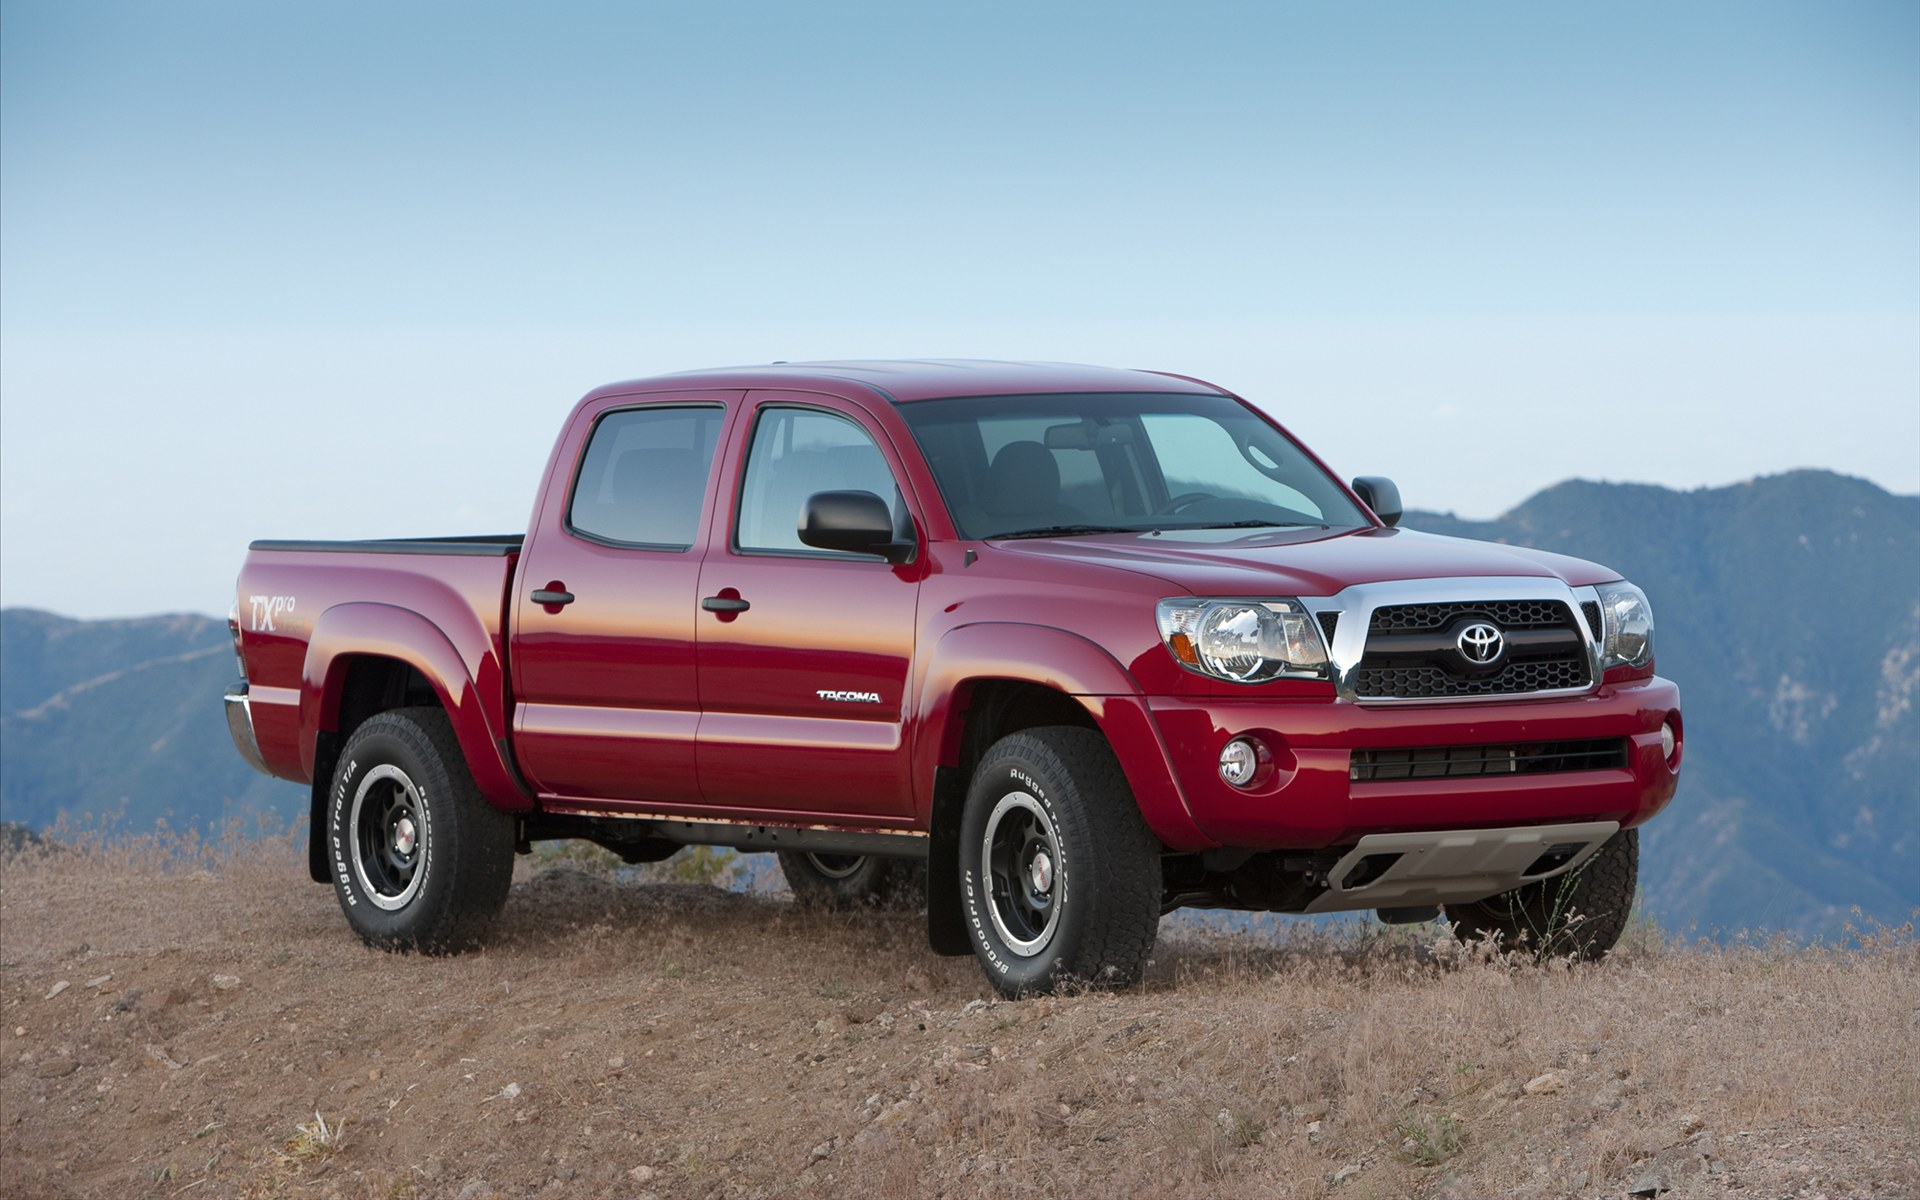 Toyota Tacoma 2011 Wallpapers 20 Sense The Car 1920x1200